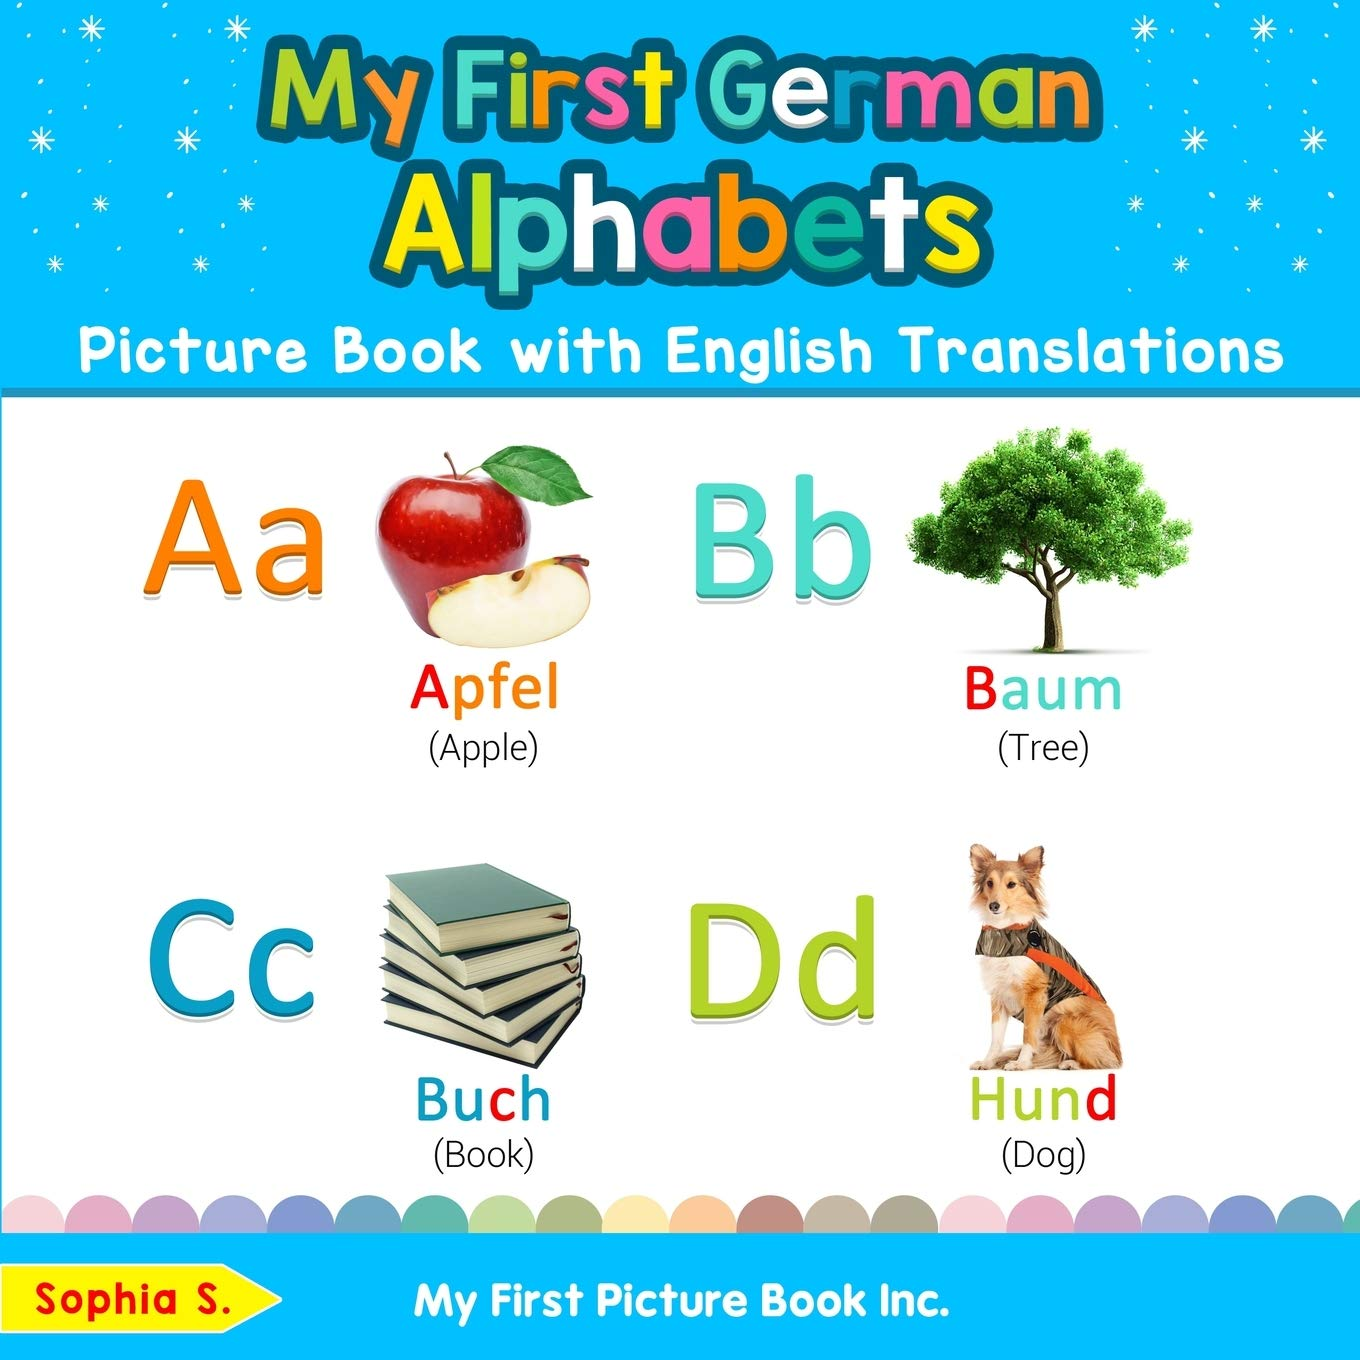 My First German Alphabets Picture Book With English Translations  Bilingual Early Learning And Easy Teaching German Books For Kids  Teach And Learn Basic German Words For Children Band 1